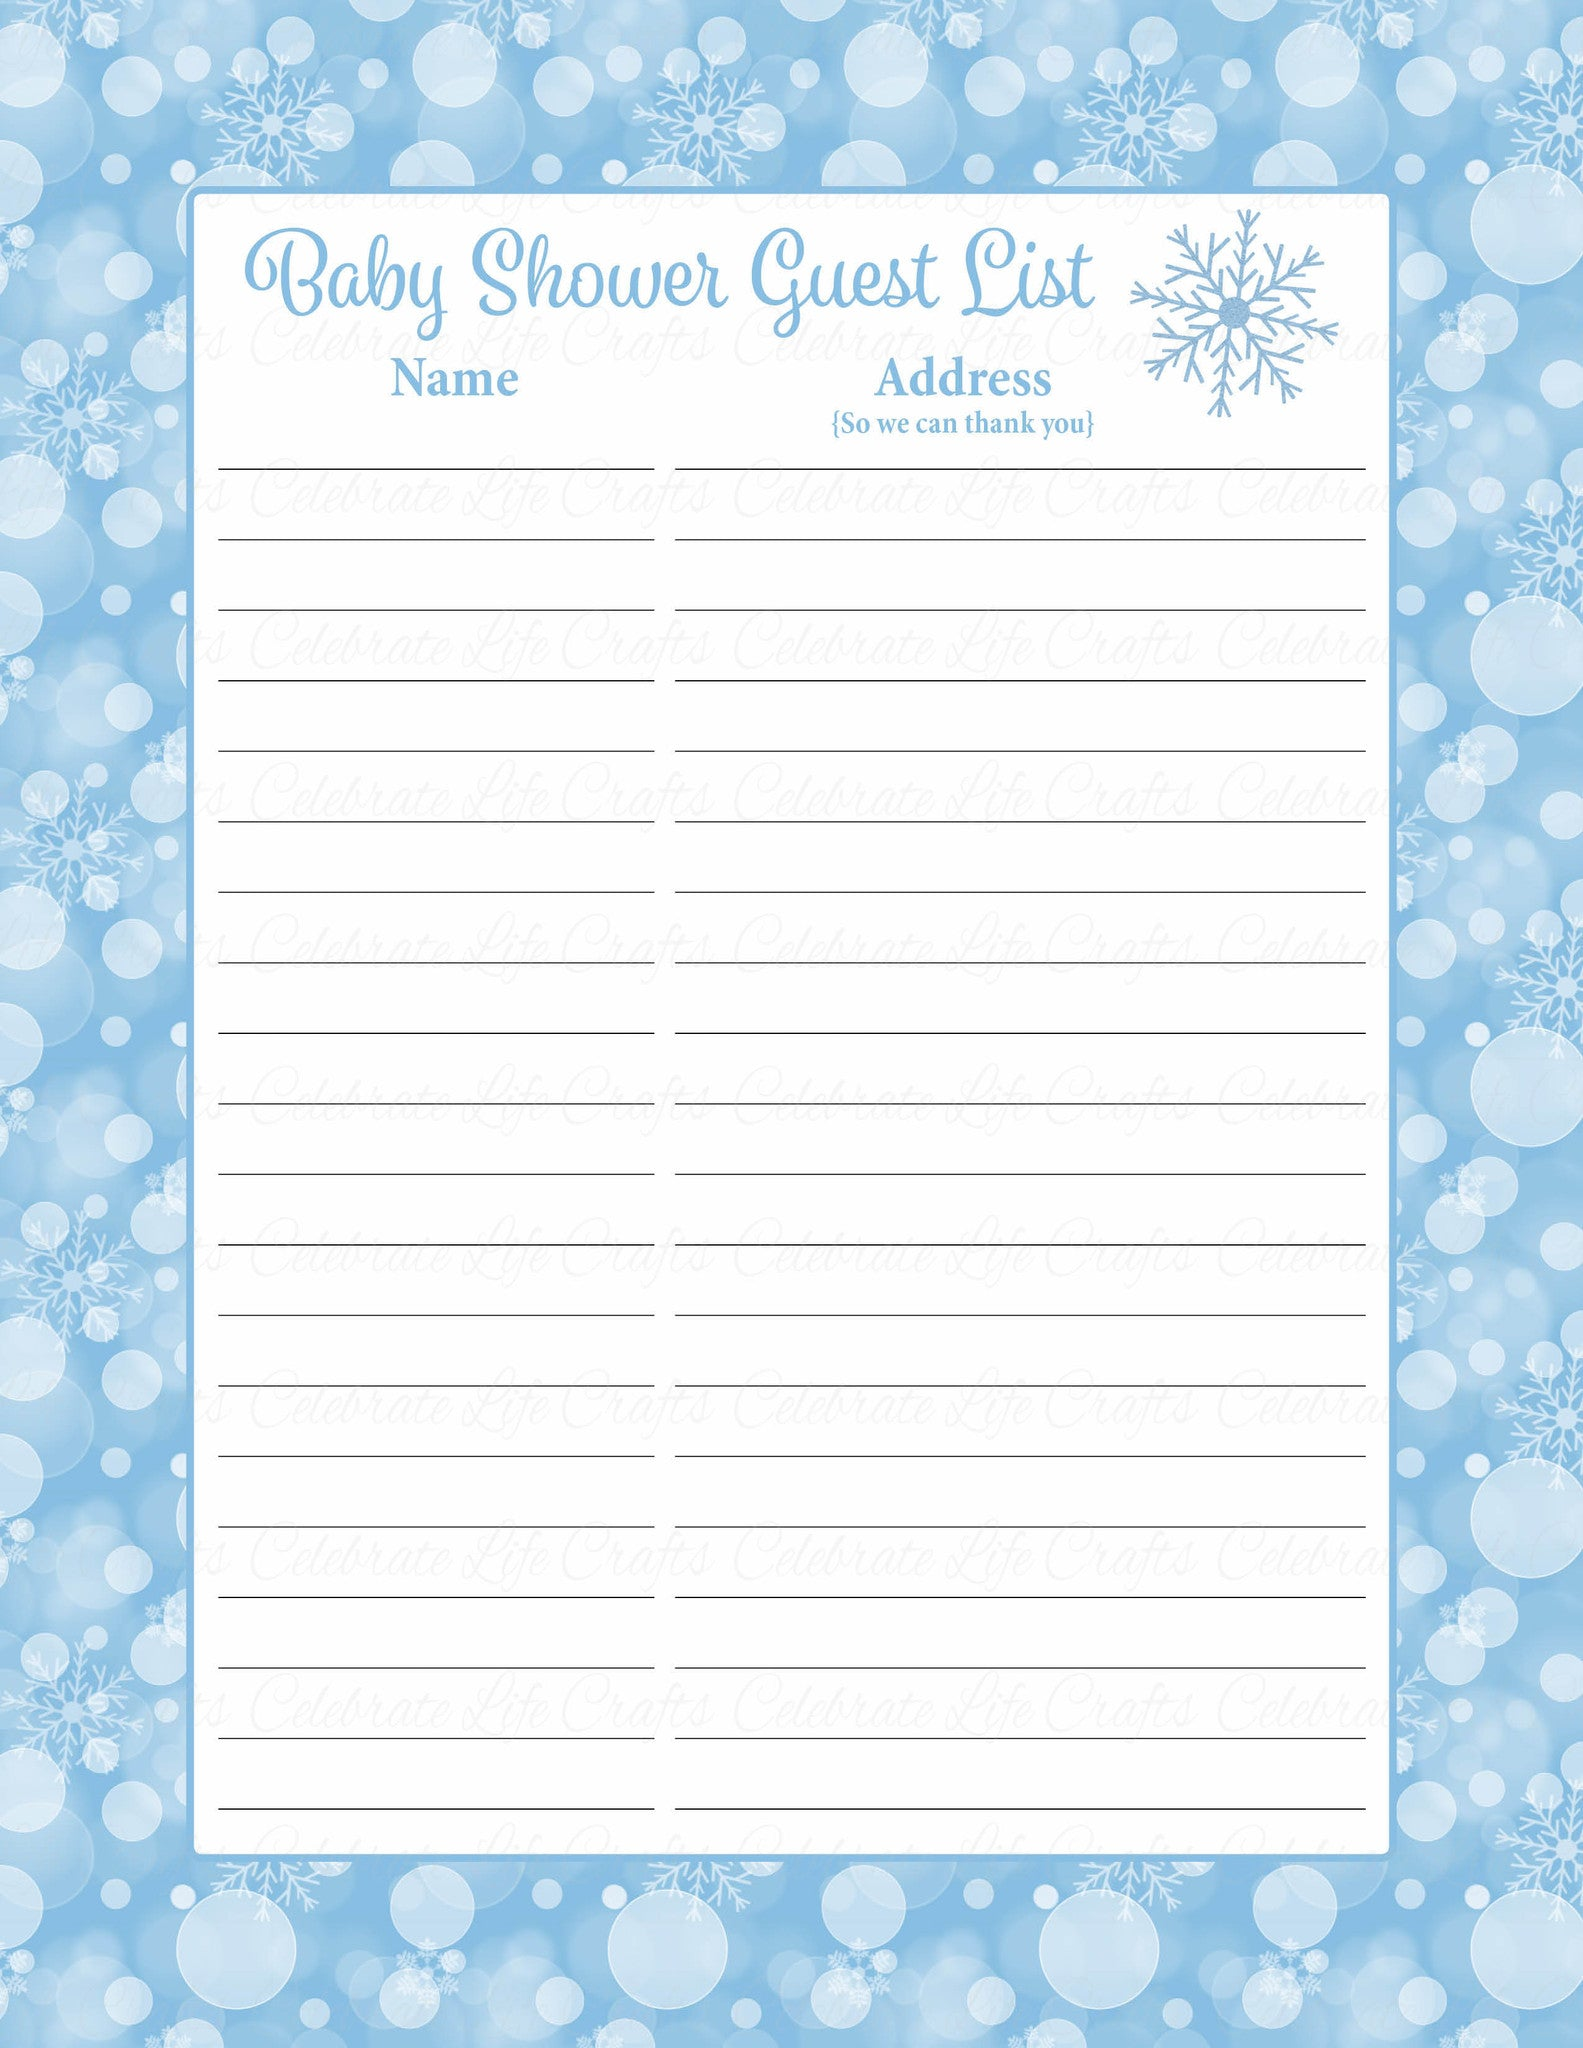 graphic relating to Baby Shower Sign in Sheet Printable called Little one Shower Visitor Record Established - Printable Obtain - Blue Bokeh Winter season Boy or girl Shower Decorations - B22002